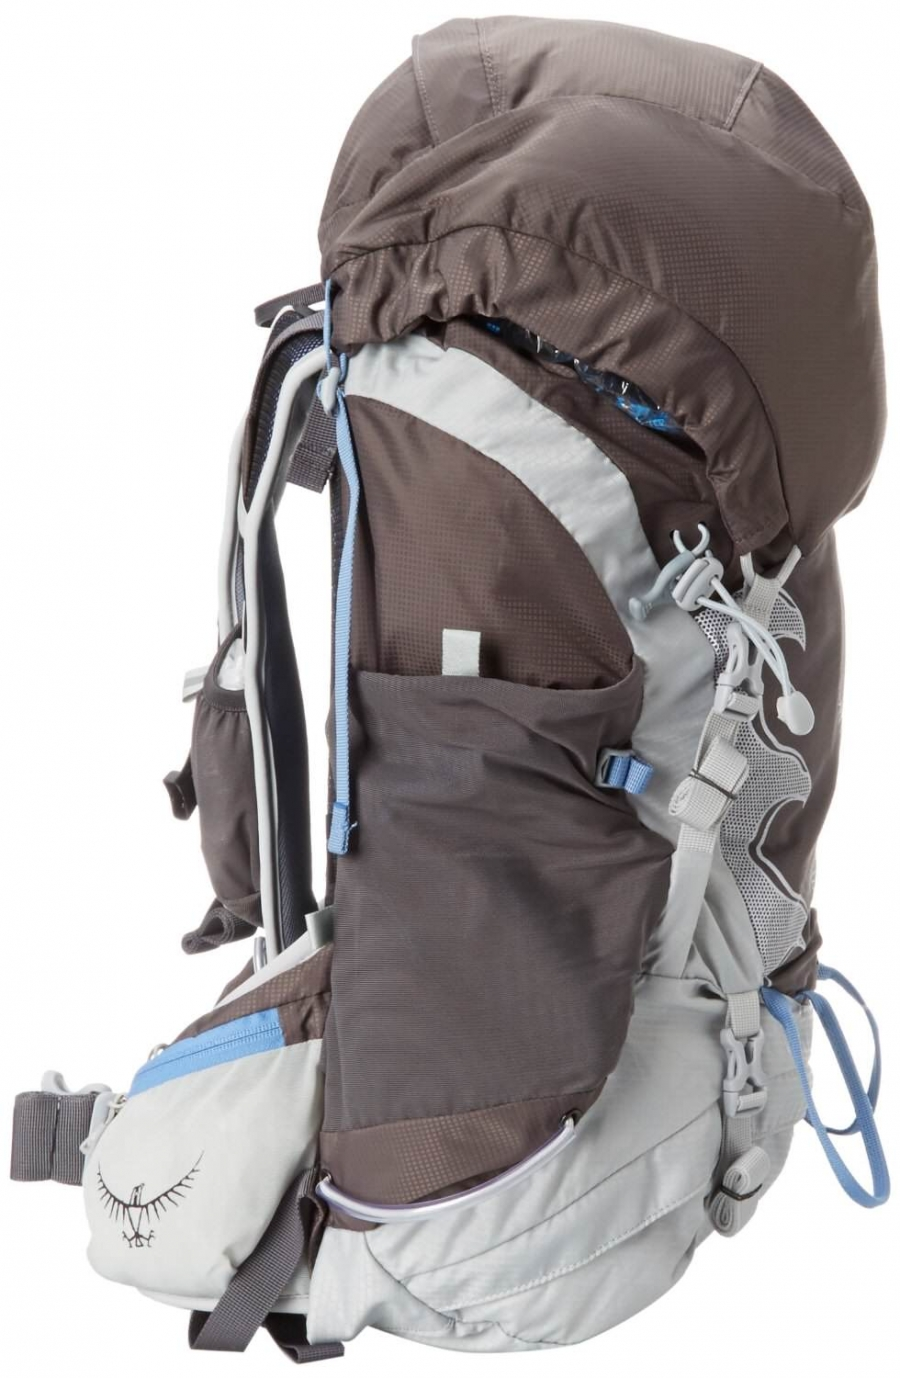 Osprey Tempest 40 women's rucksack tested and reviewed